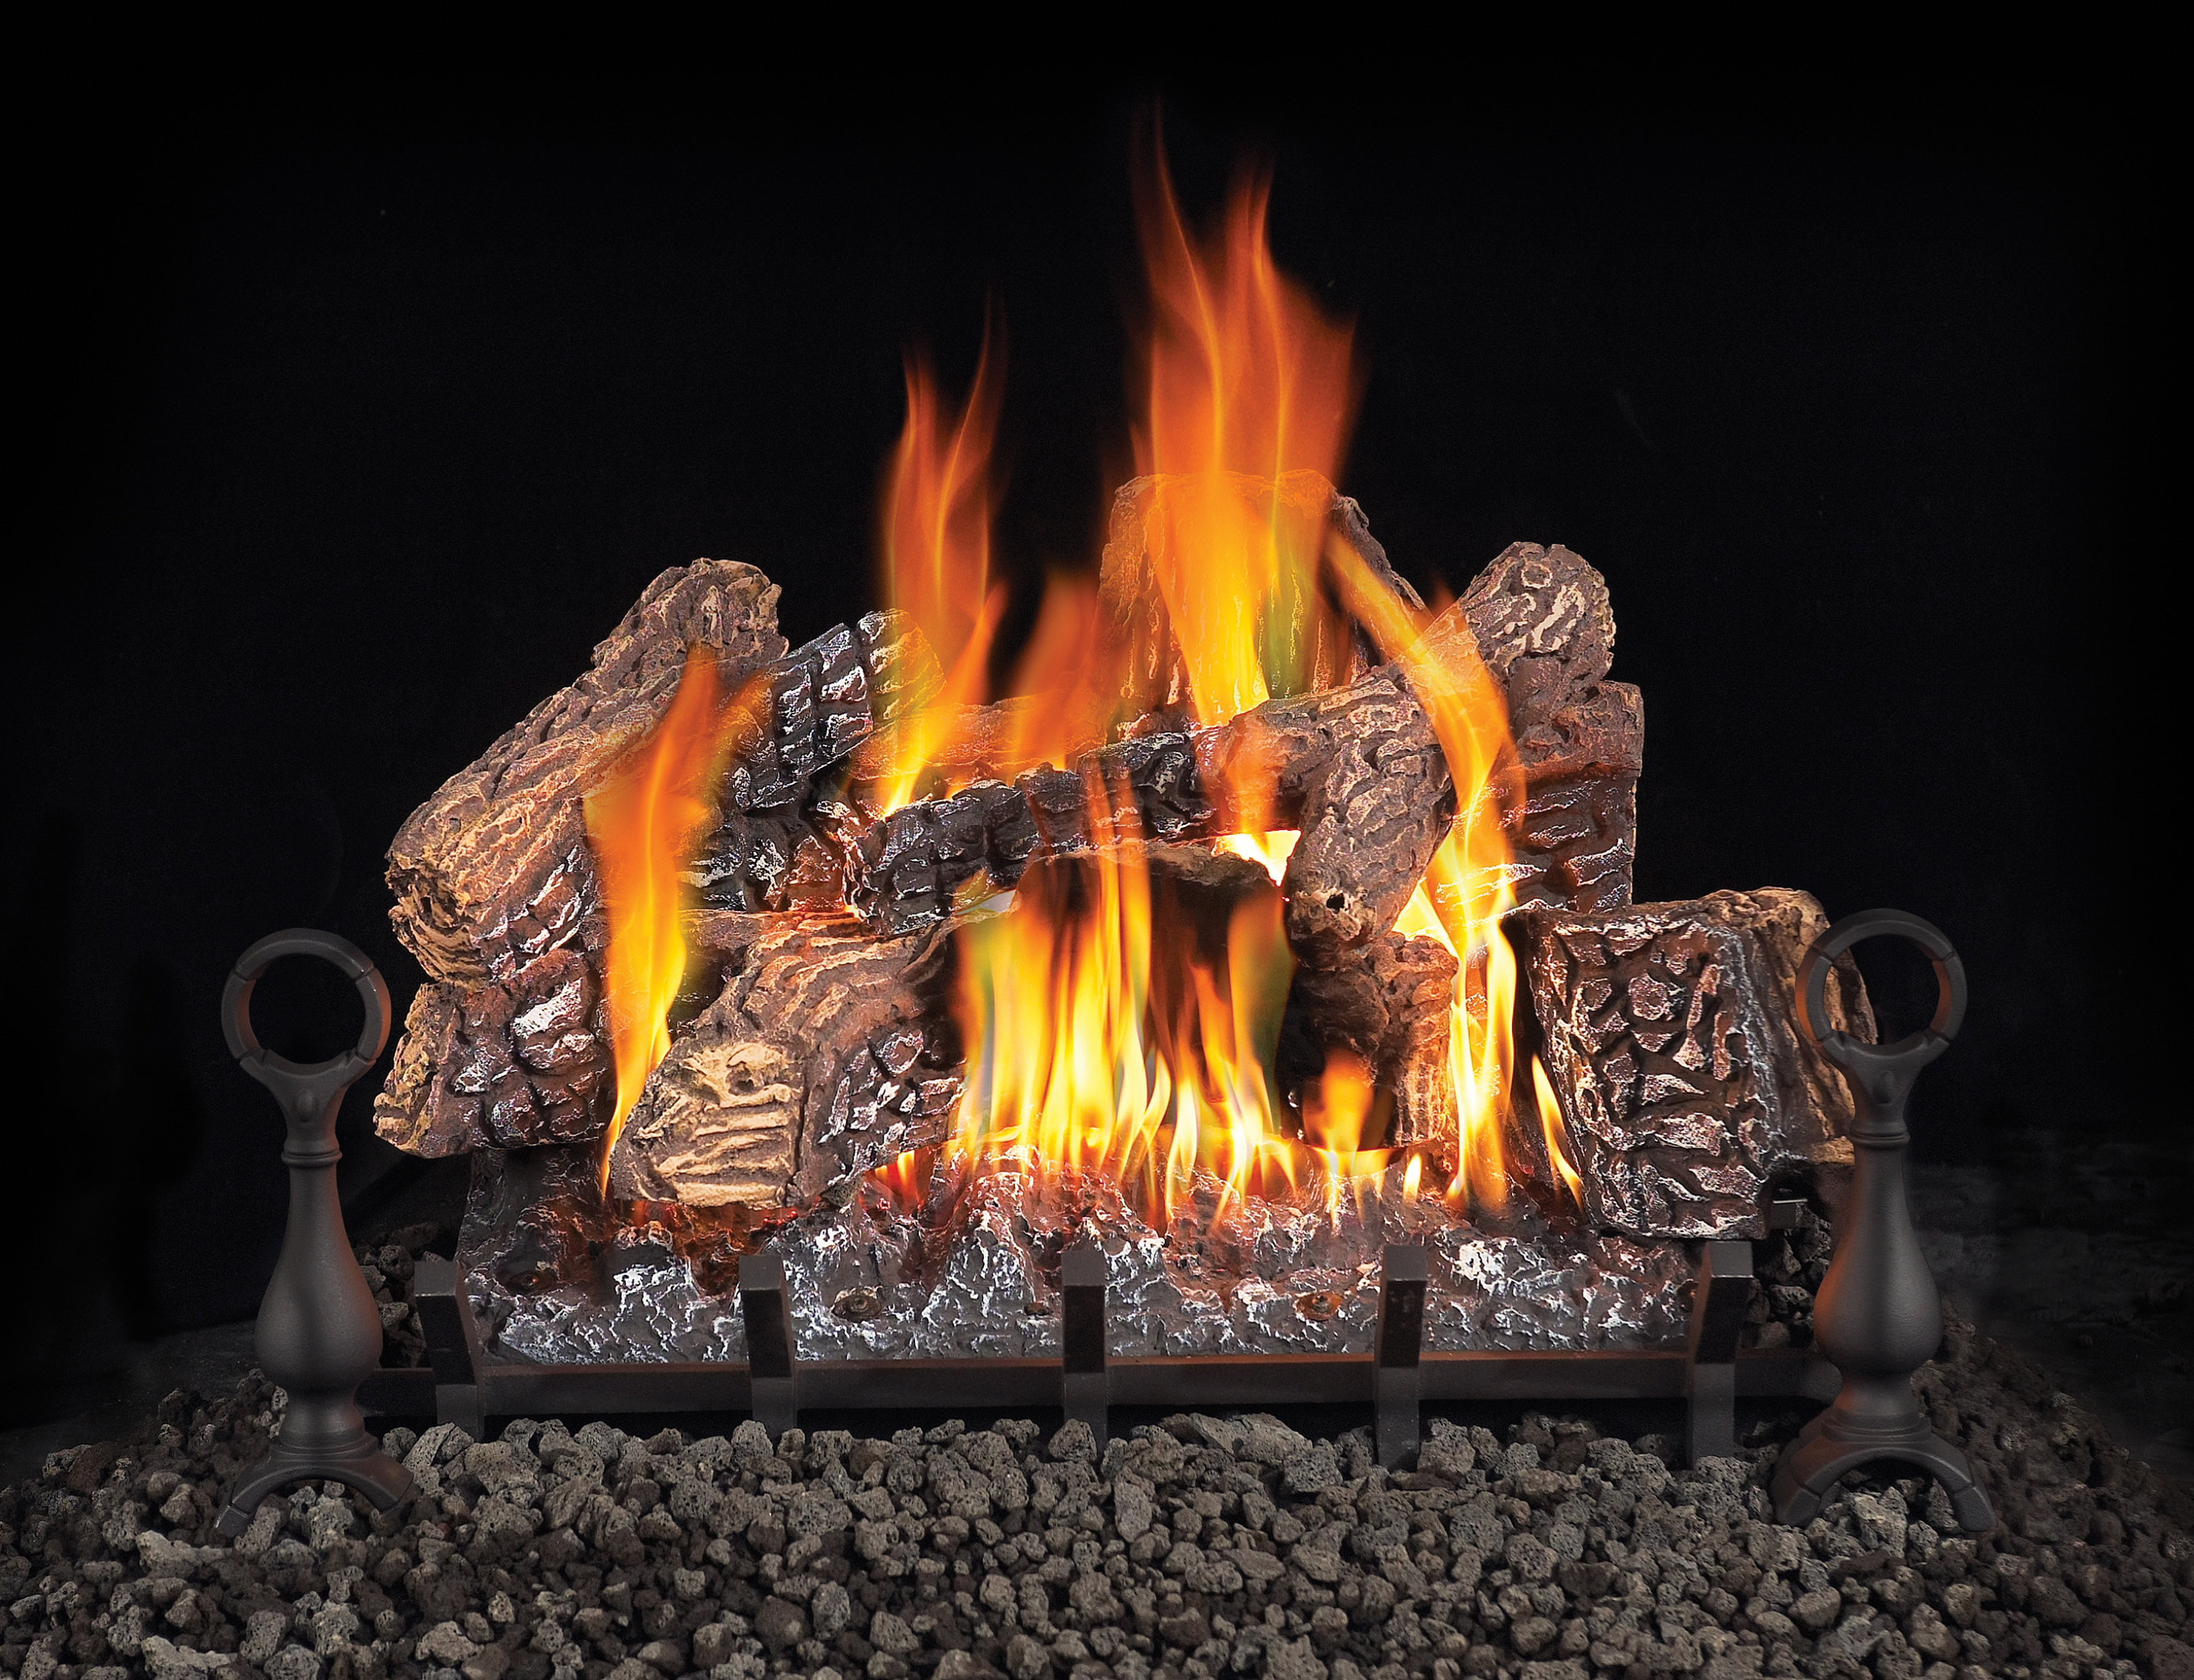 inferno chimney ceramic countryside fireplace stove logs gas